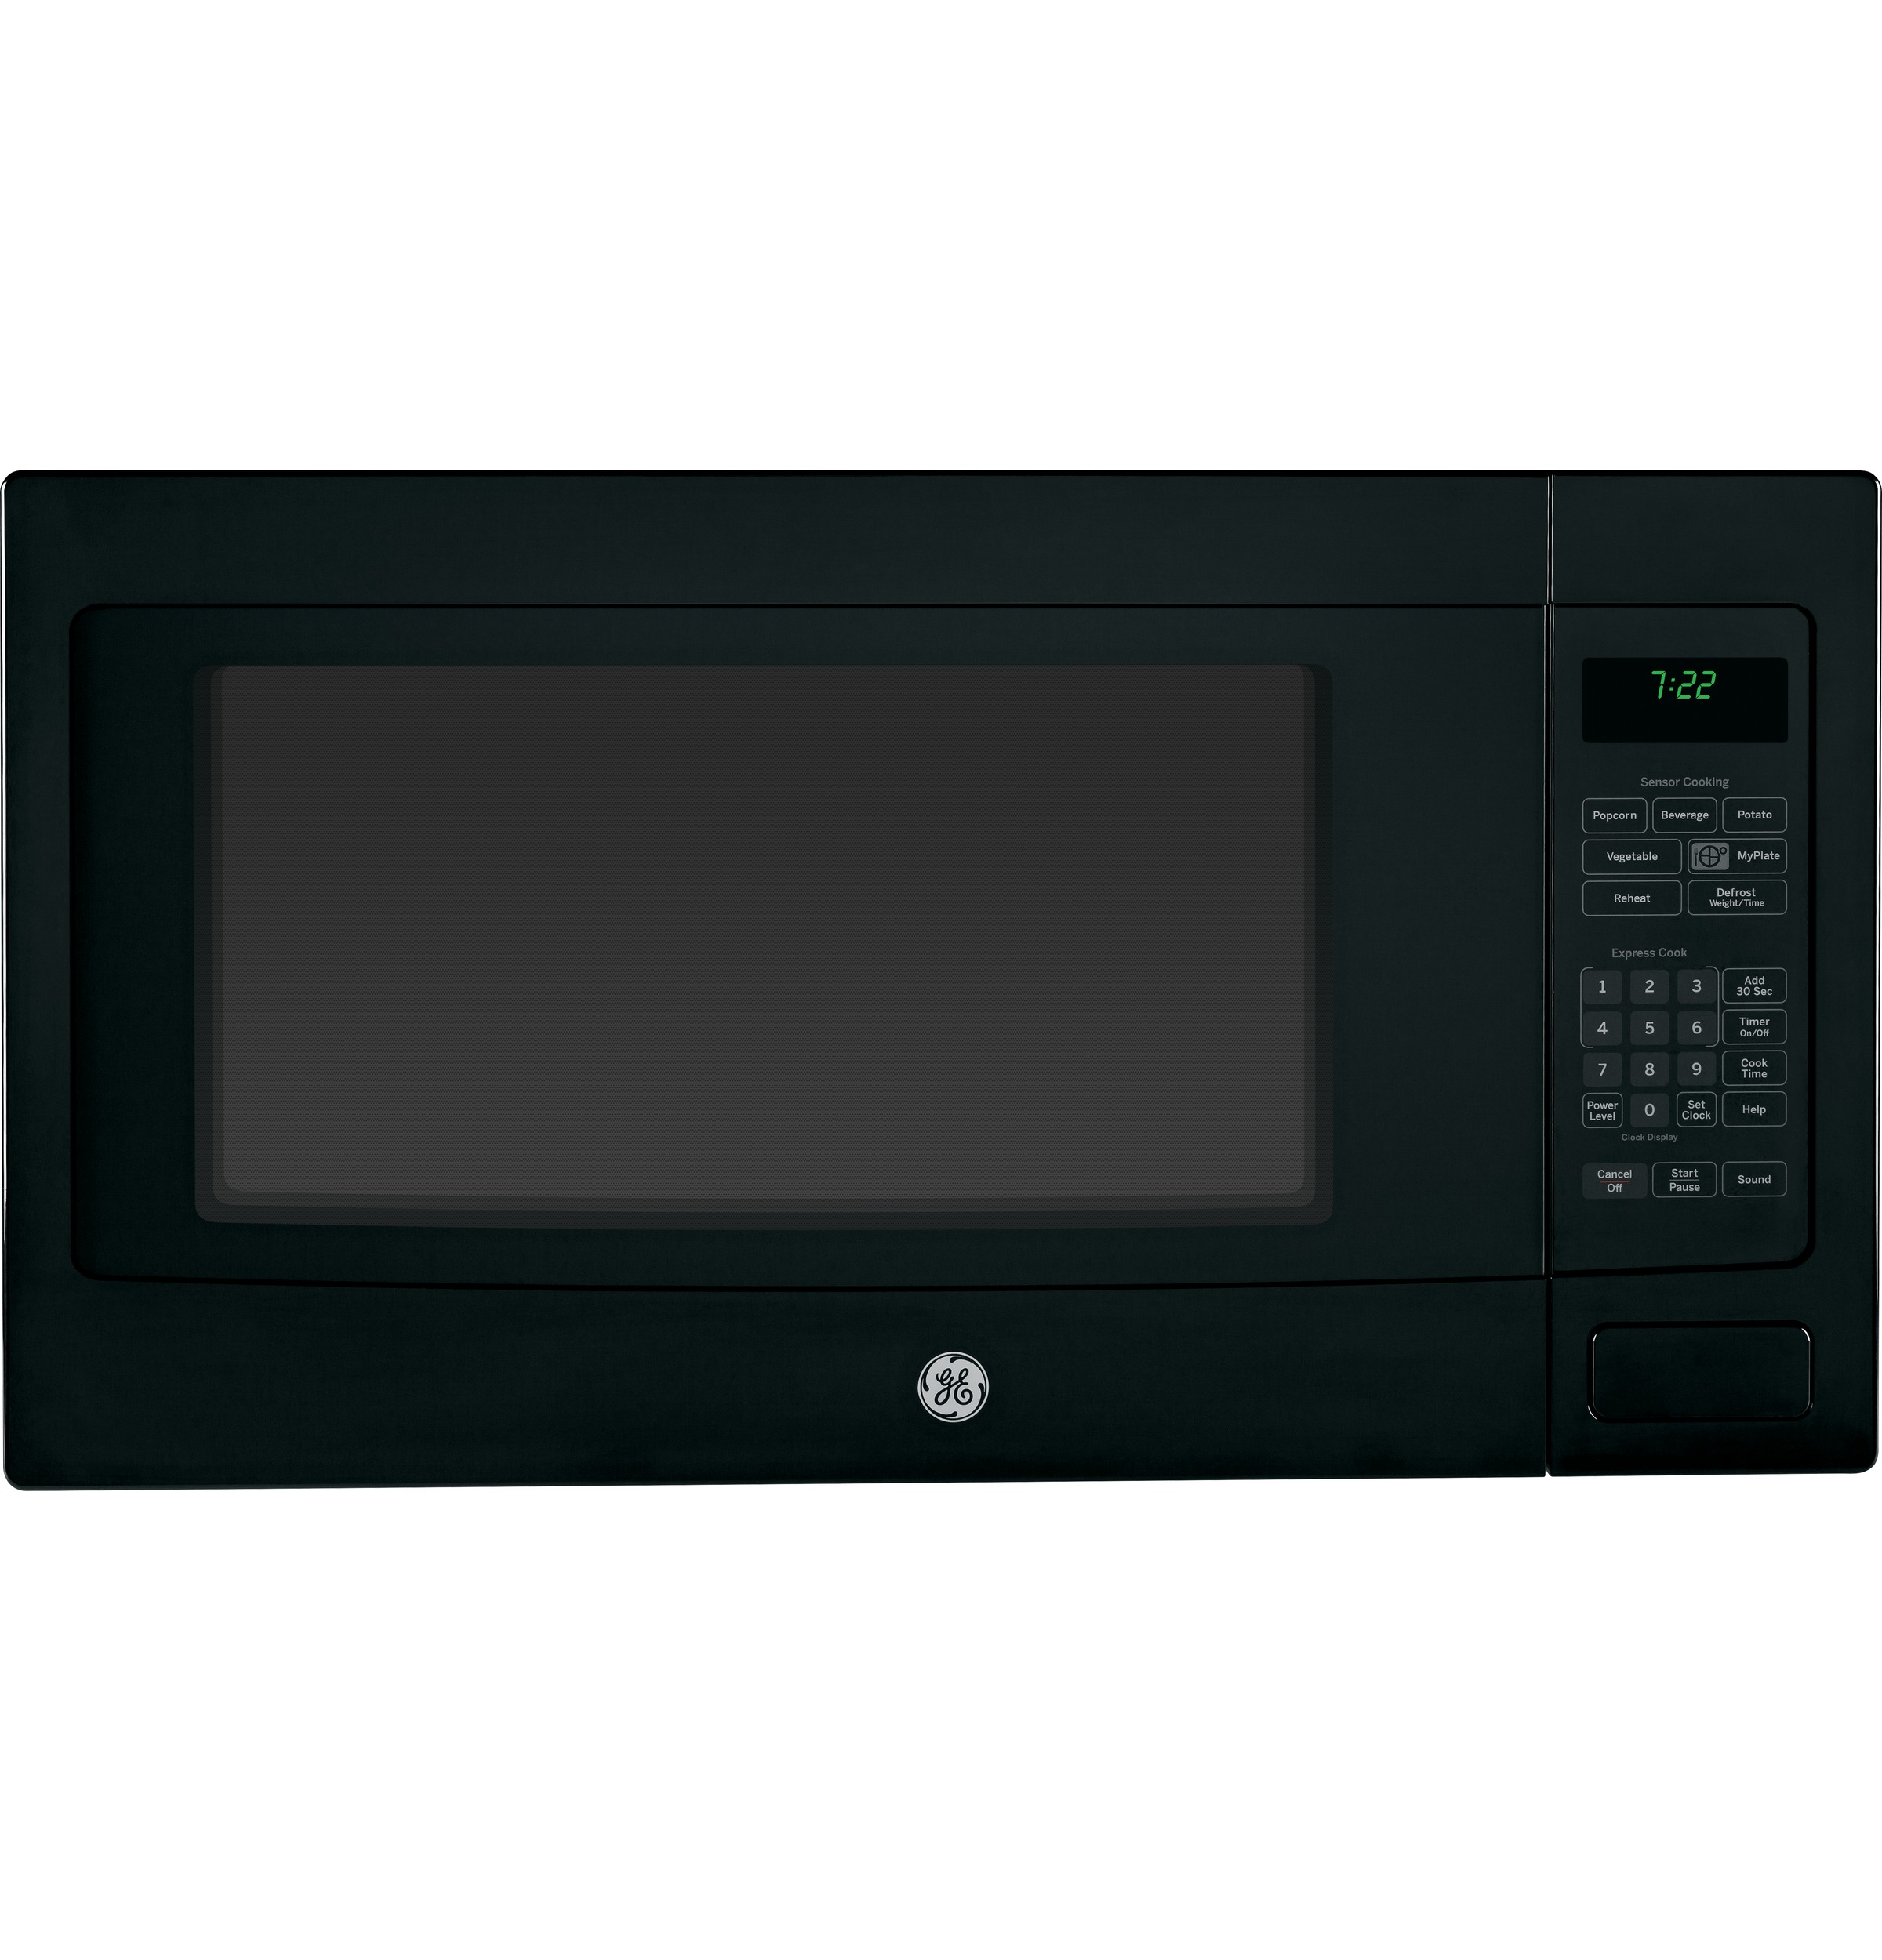 GE Profile Series - 2.2Cu.Ft. Countertop Microwave Oven - PEB7226DFBB ...